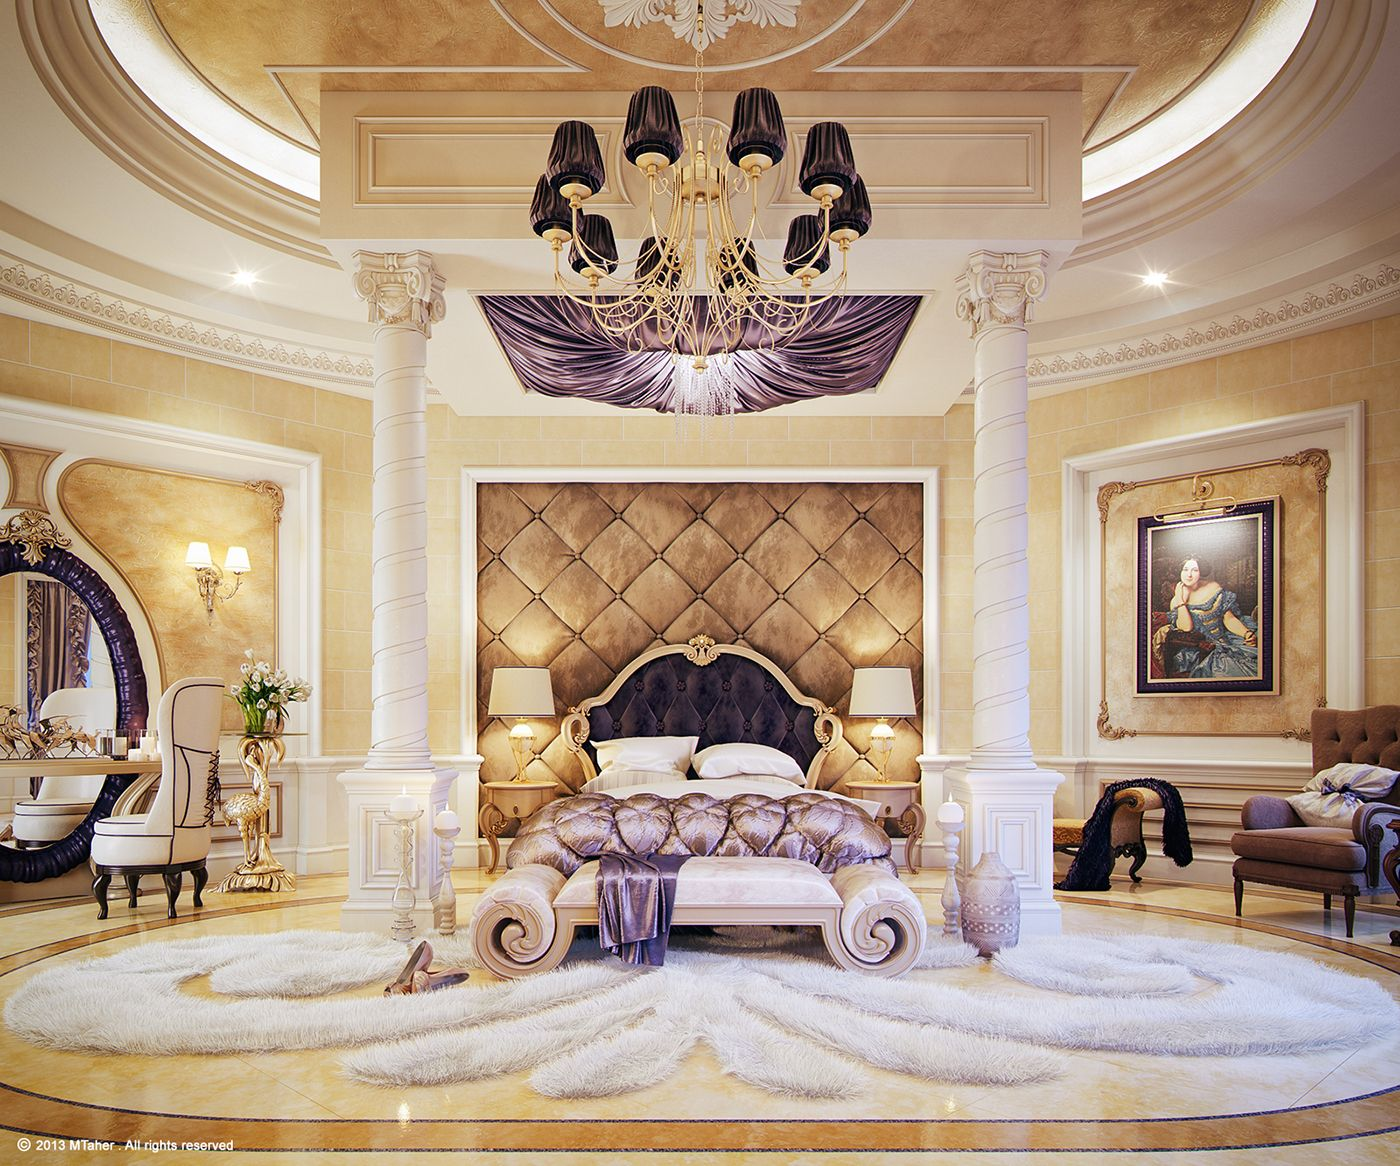 Get Inspired By These Gold And Royal Bedrooms For Your Master Decoration Gold Royal Bedroomdecoration Go Luxury Bedroom Master Royal Bedroom Fancy Bedroom